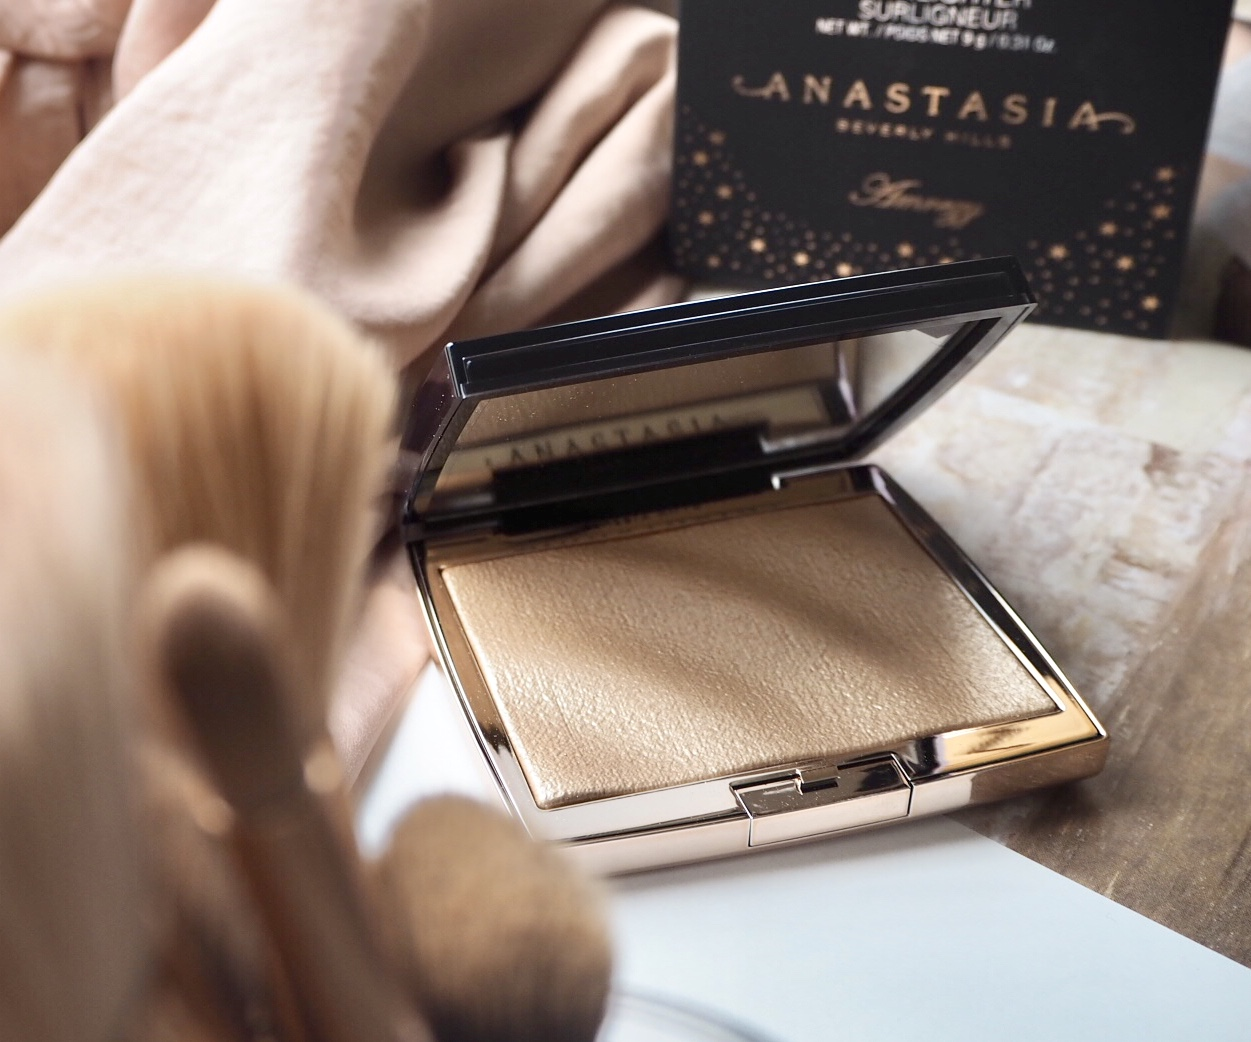 Anastasia Beverly Hills x Amrezy collaboration Highlighter